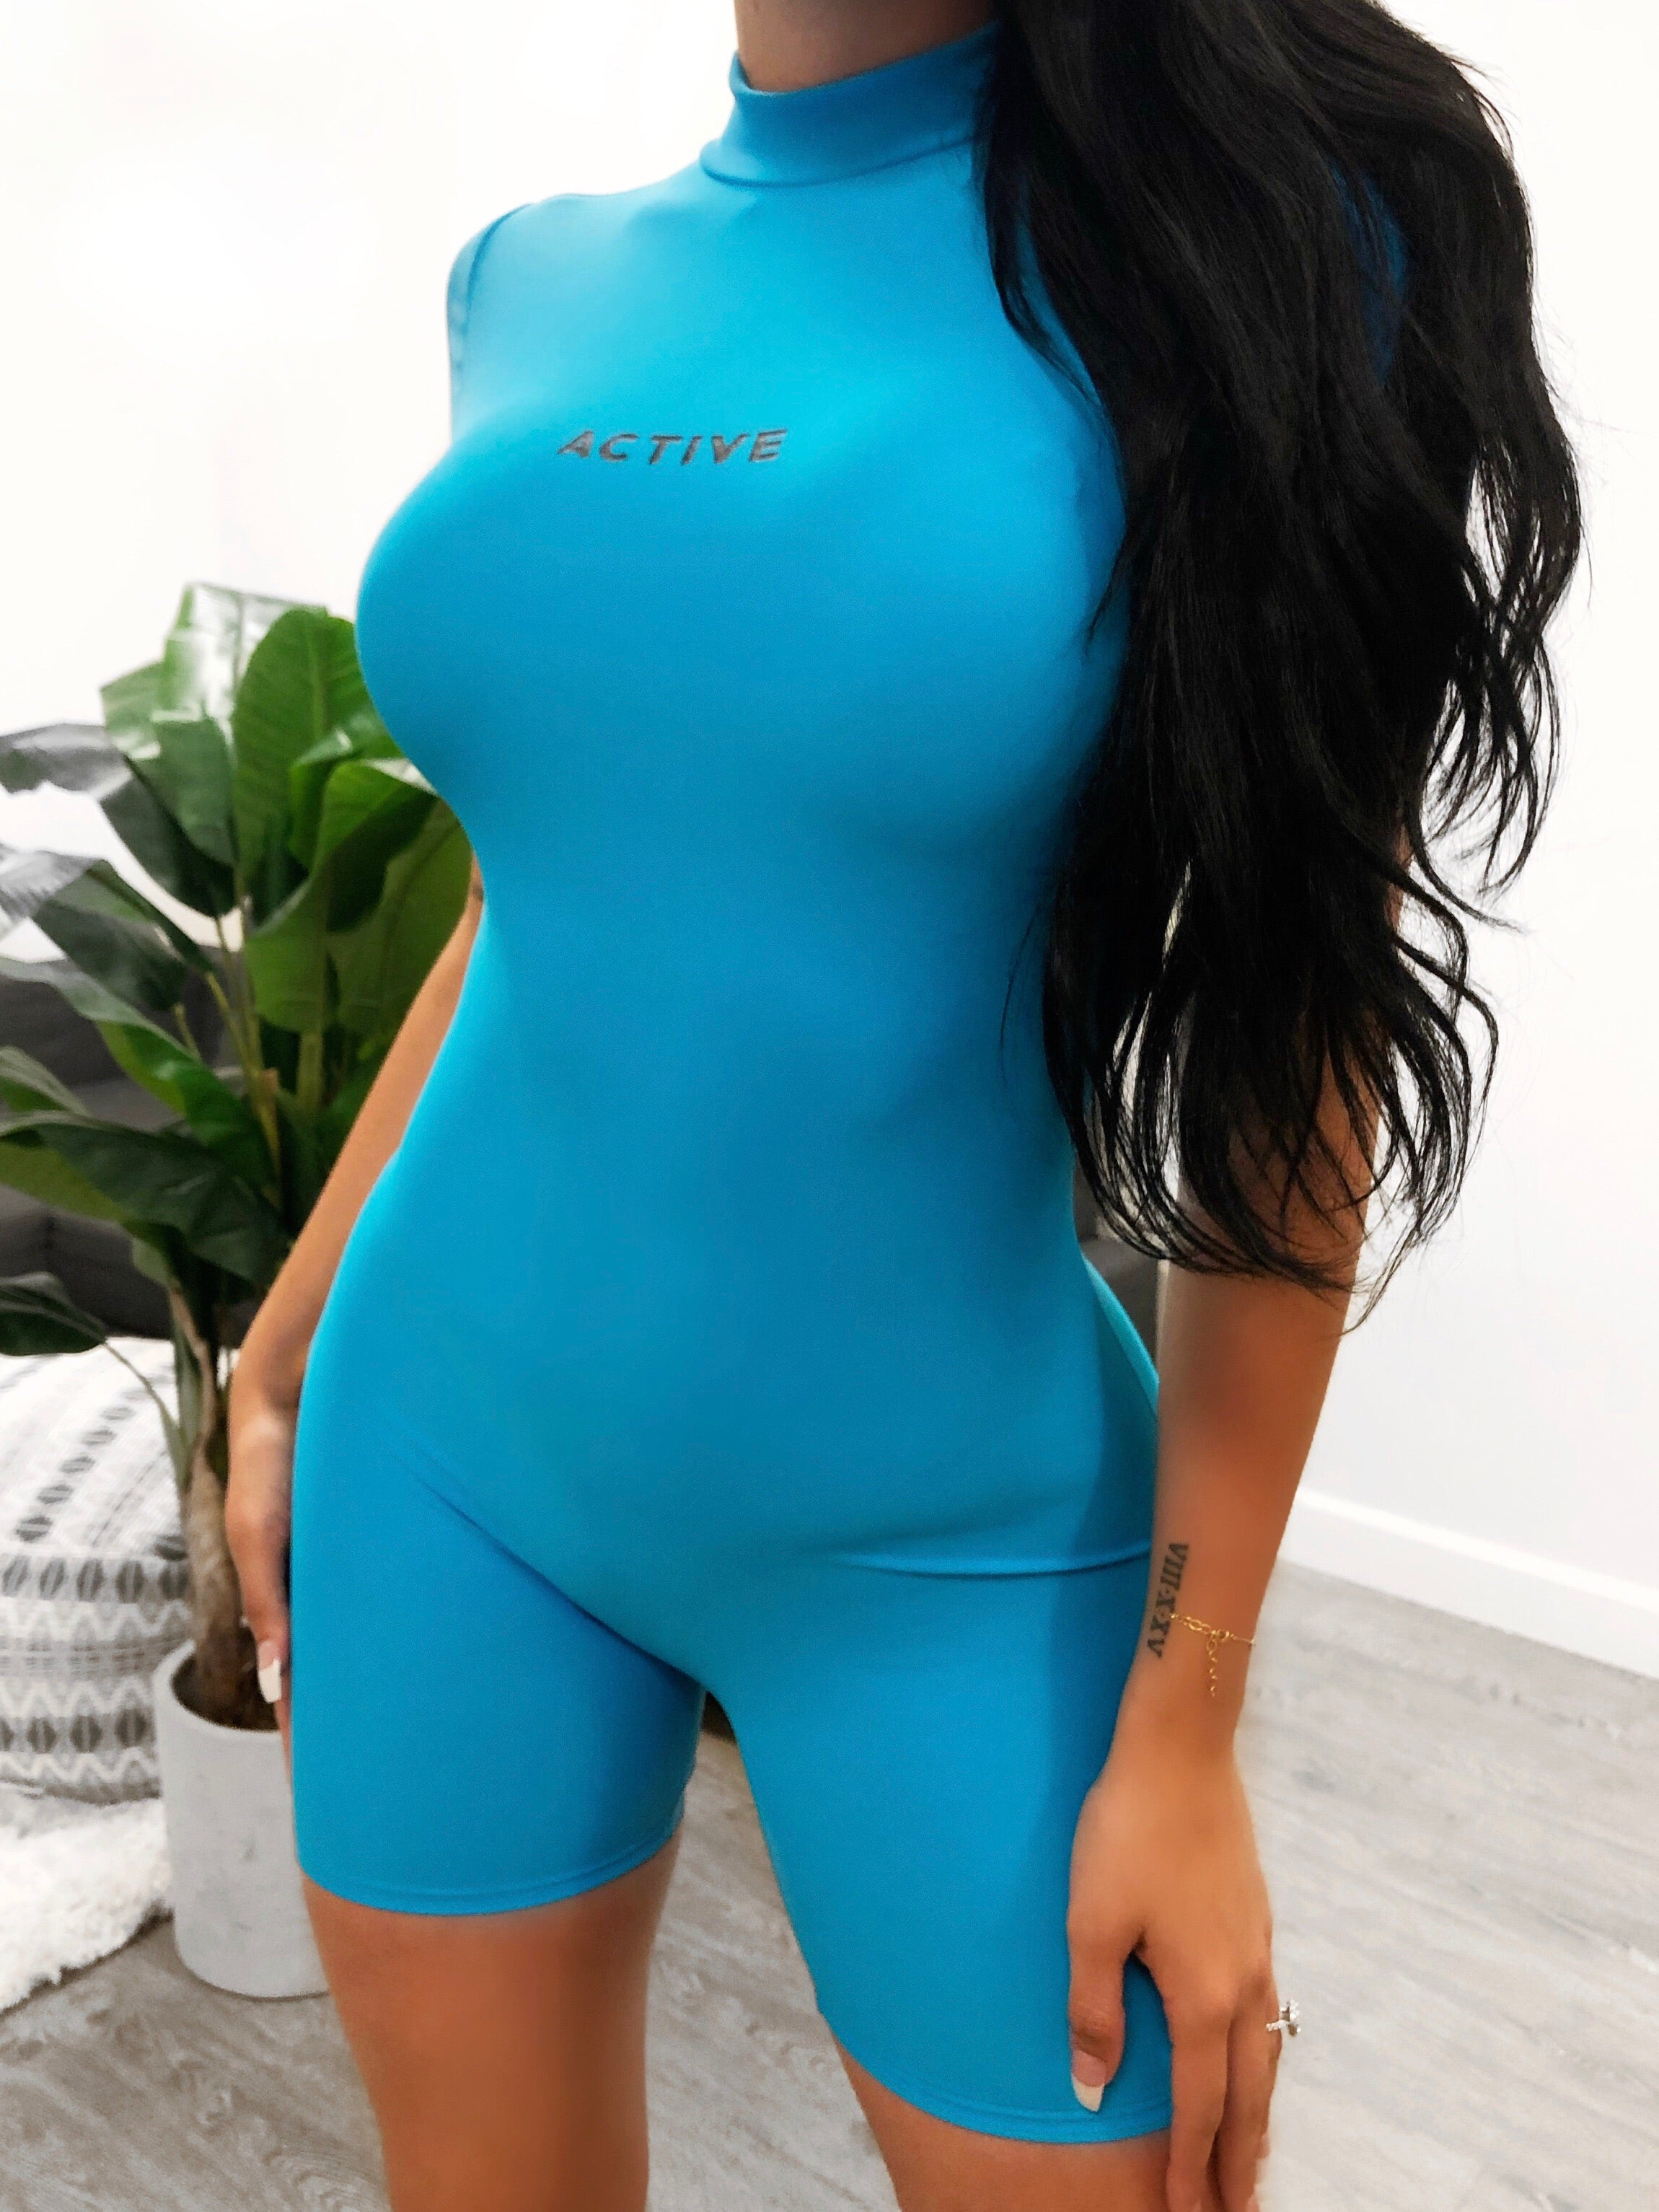 sports, romper has a turtleneck, tight fitting t-shirt sleeves, length is to mid thigh